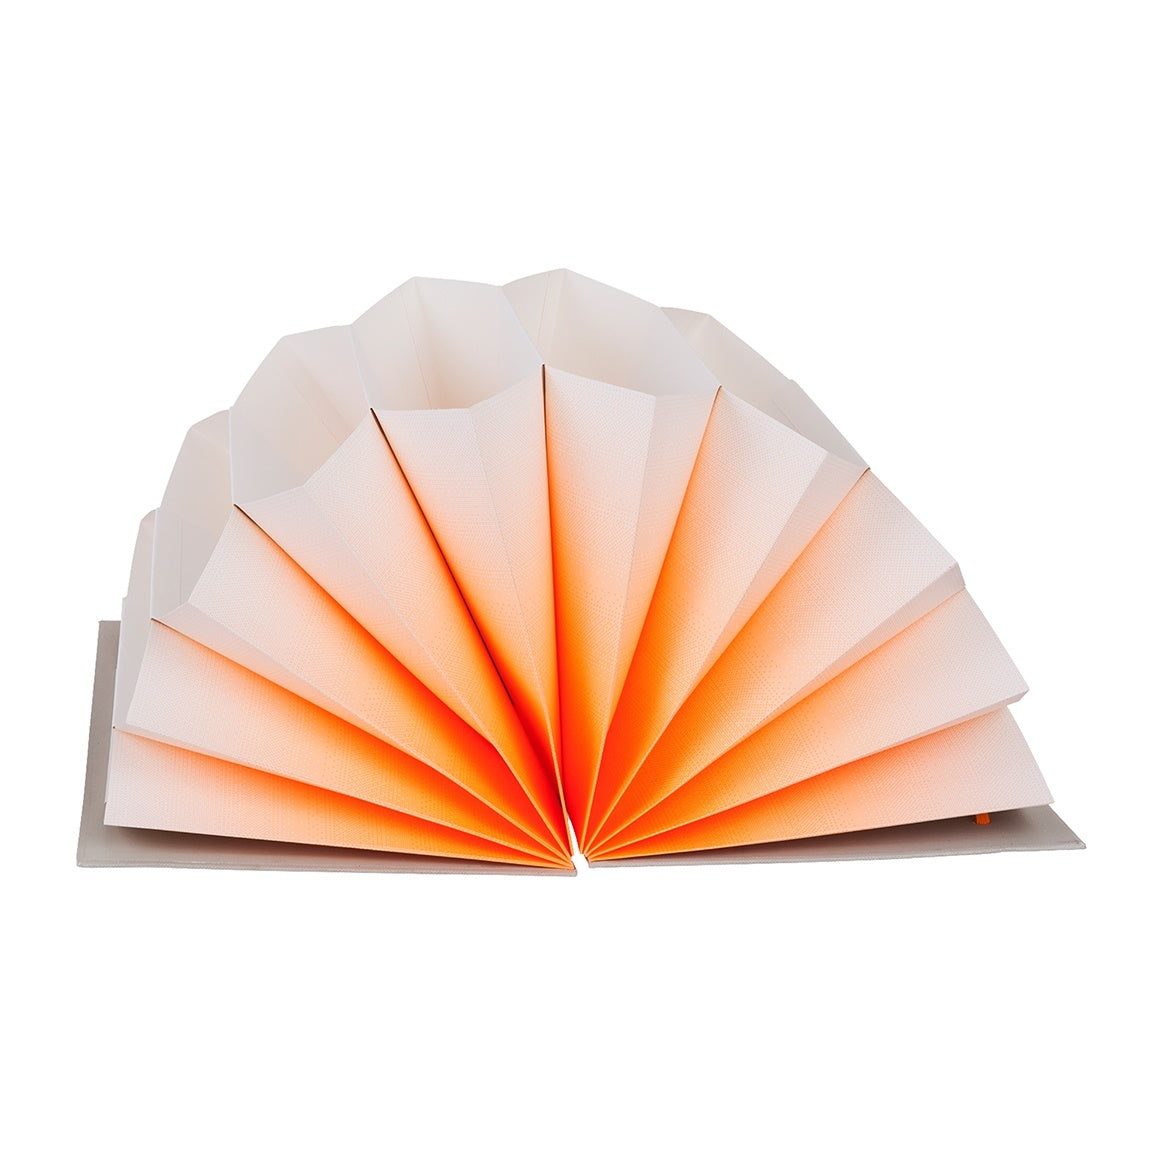 HAY Plisse FOLDER / A4 / orange fade - Eclectic Cool  - 1